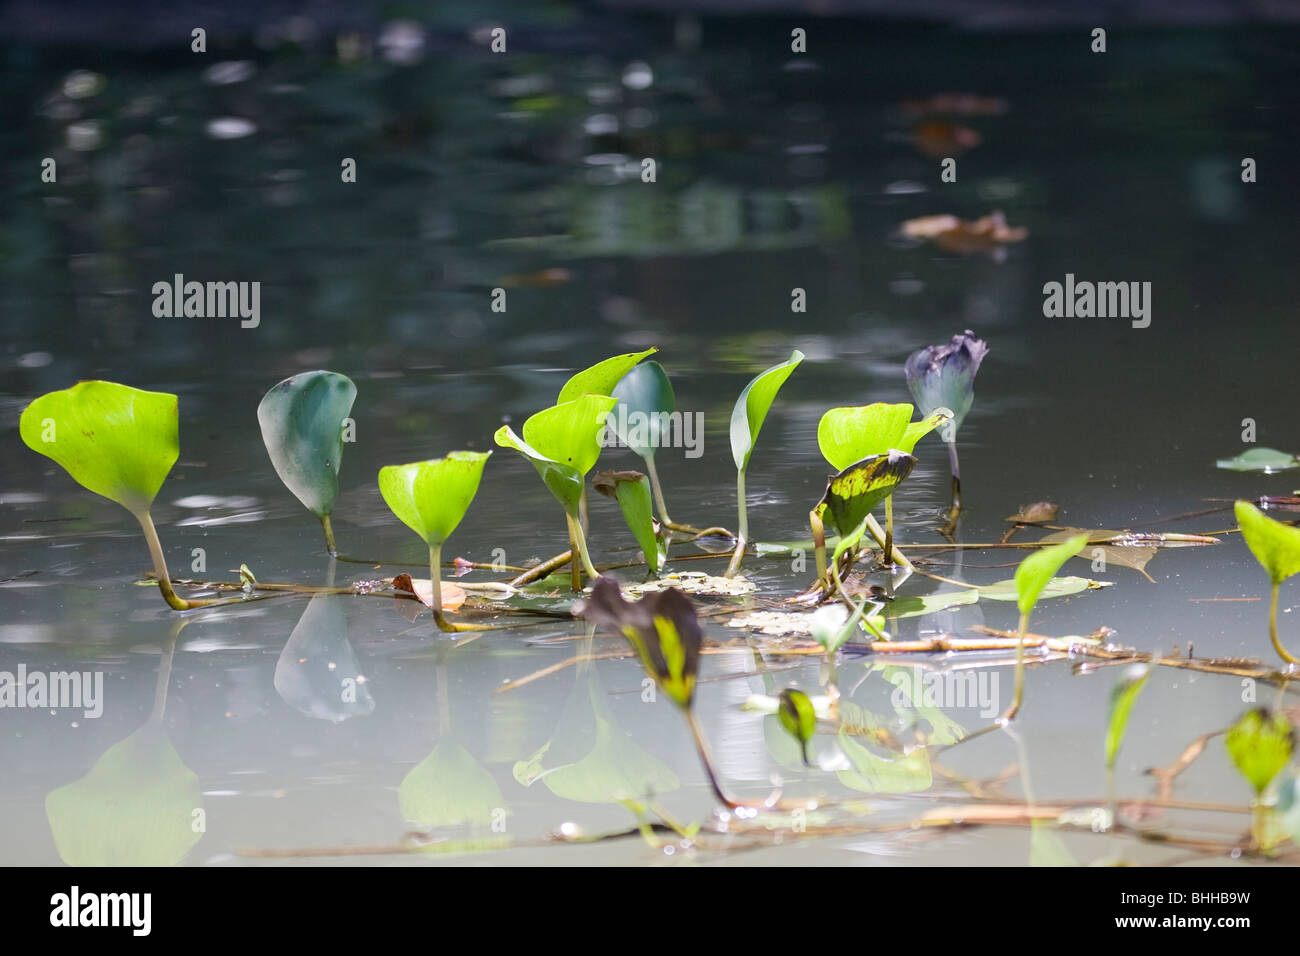 Aquatic plants above the surface of water, Costa Rica. - Stock Image